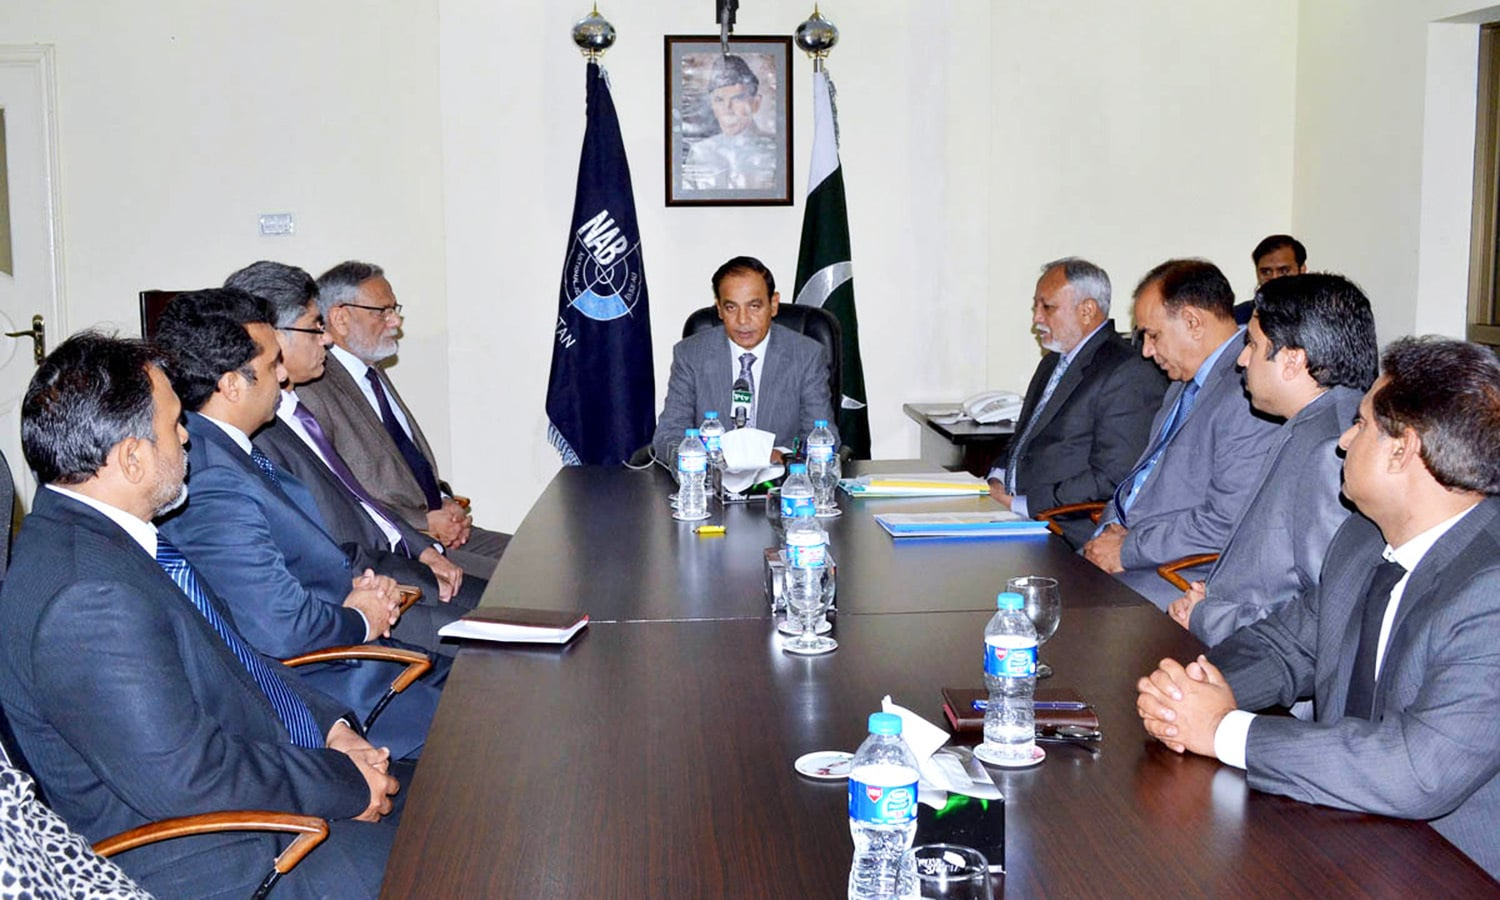 MULTAN: National Accountability Bureau Chairman Qamar Zaman Chaudhry presiding over a meeting during his visit to the bureau's regional office here to review its performance on the basis of the annual inspection conducted by an inspection and monitoring team.—APP